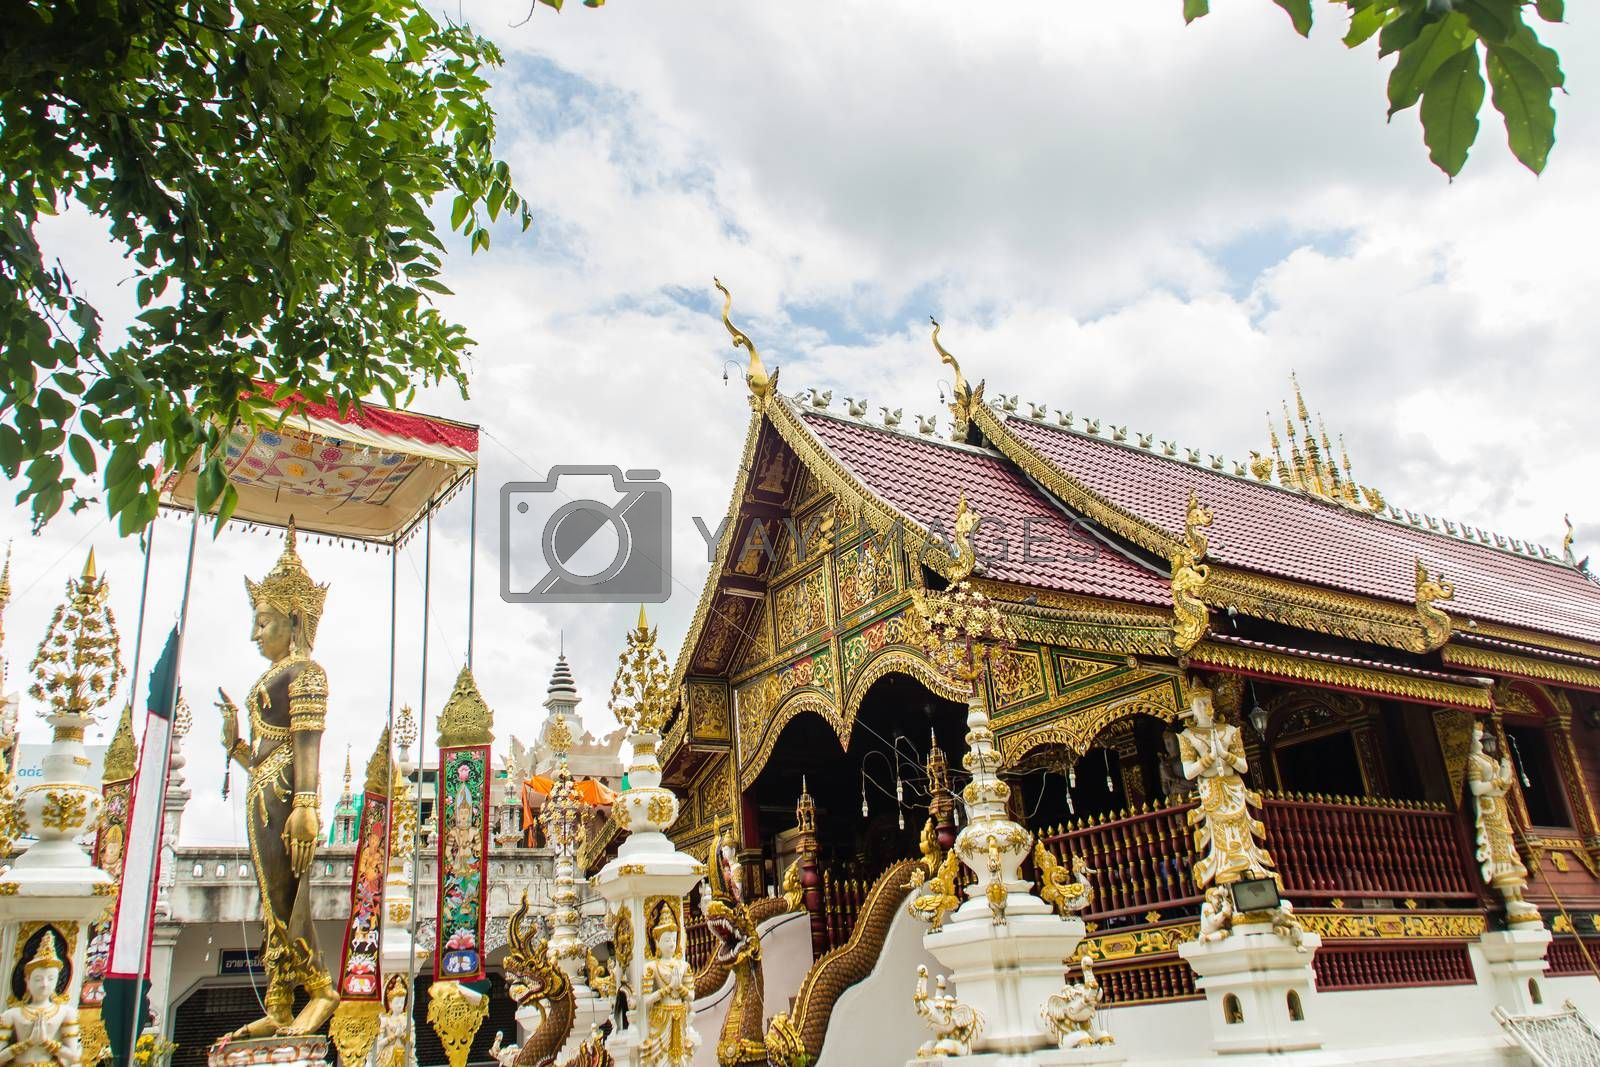 Beautiful art, religious places and religious objects in Myanmar mixed with Lanna style at Wat Ming Muang Buddhist temple, Chiang Rai, Thailand. Mixed Lanna and Burmese arts.